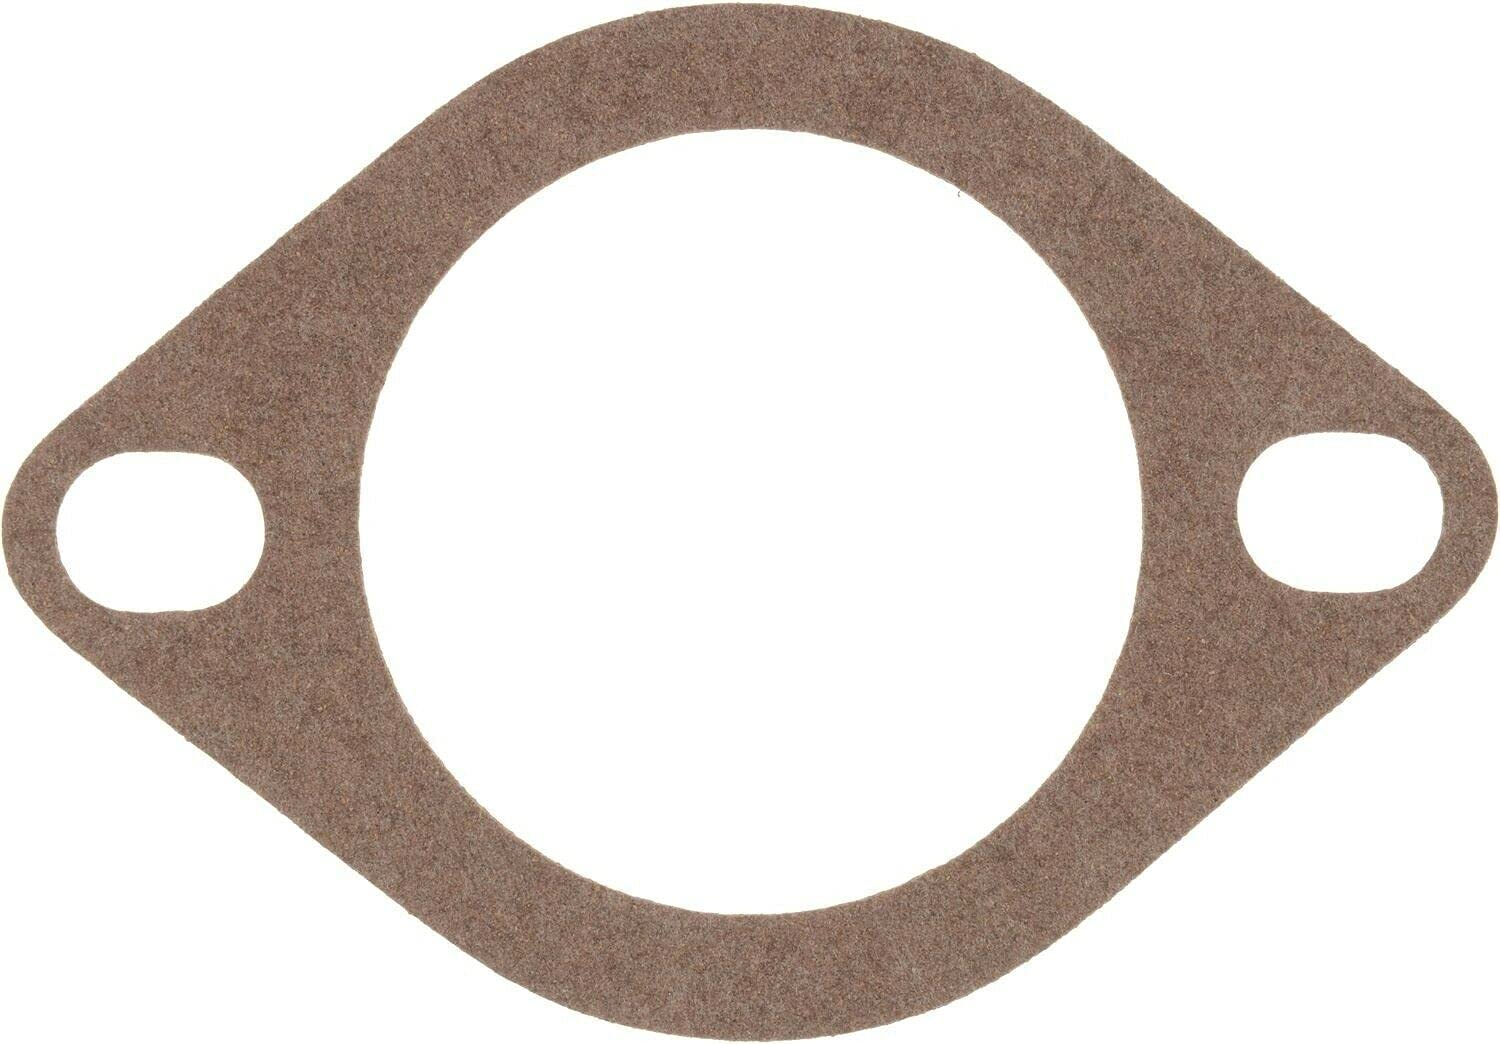 Replacement Engine Coolant Water Outlet Adapter Gasket